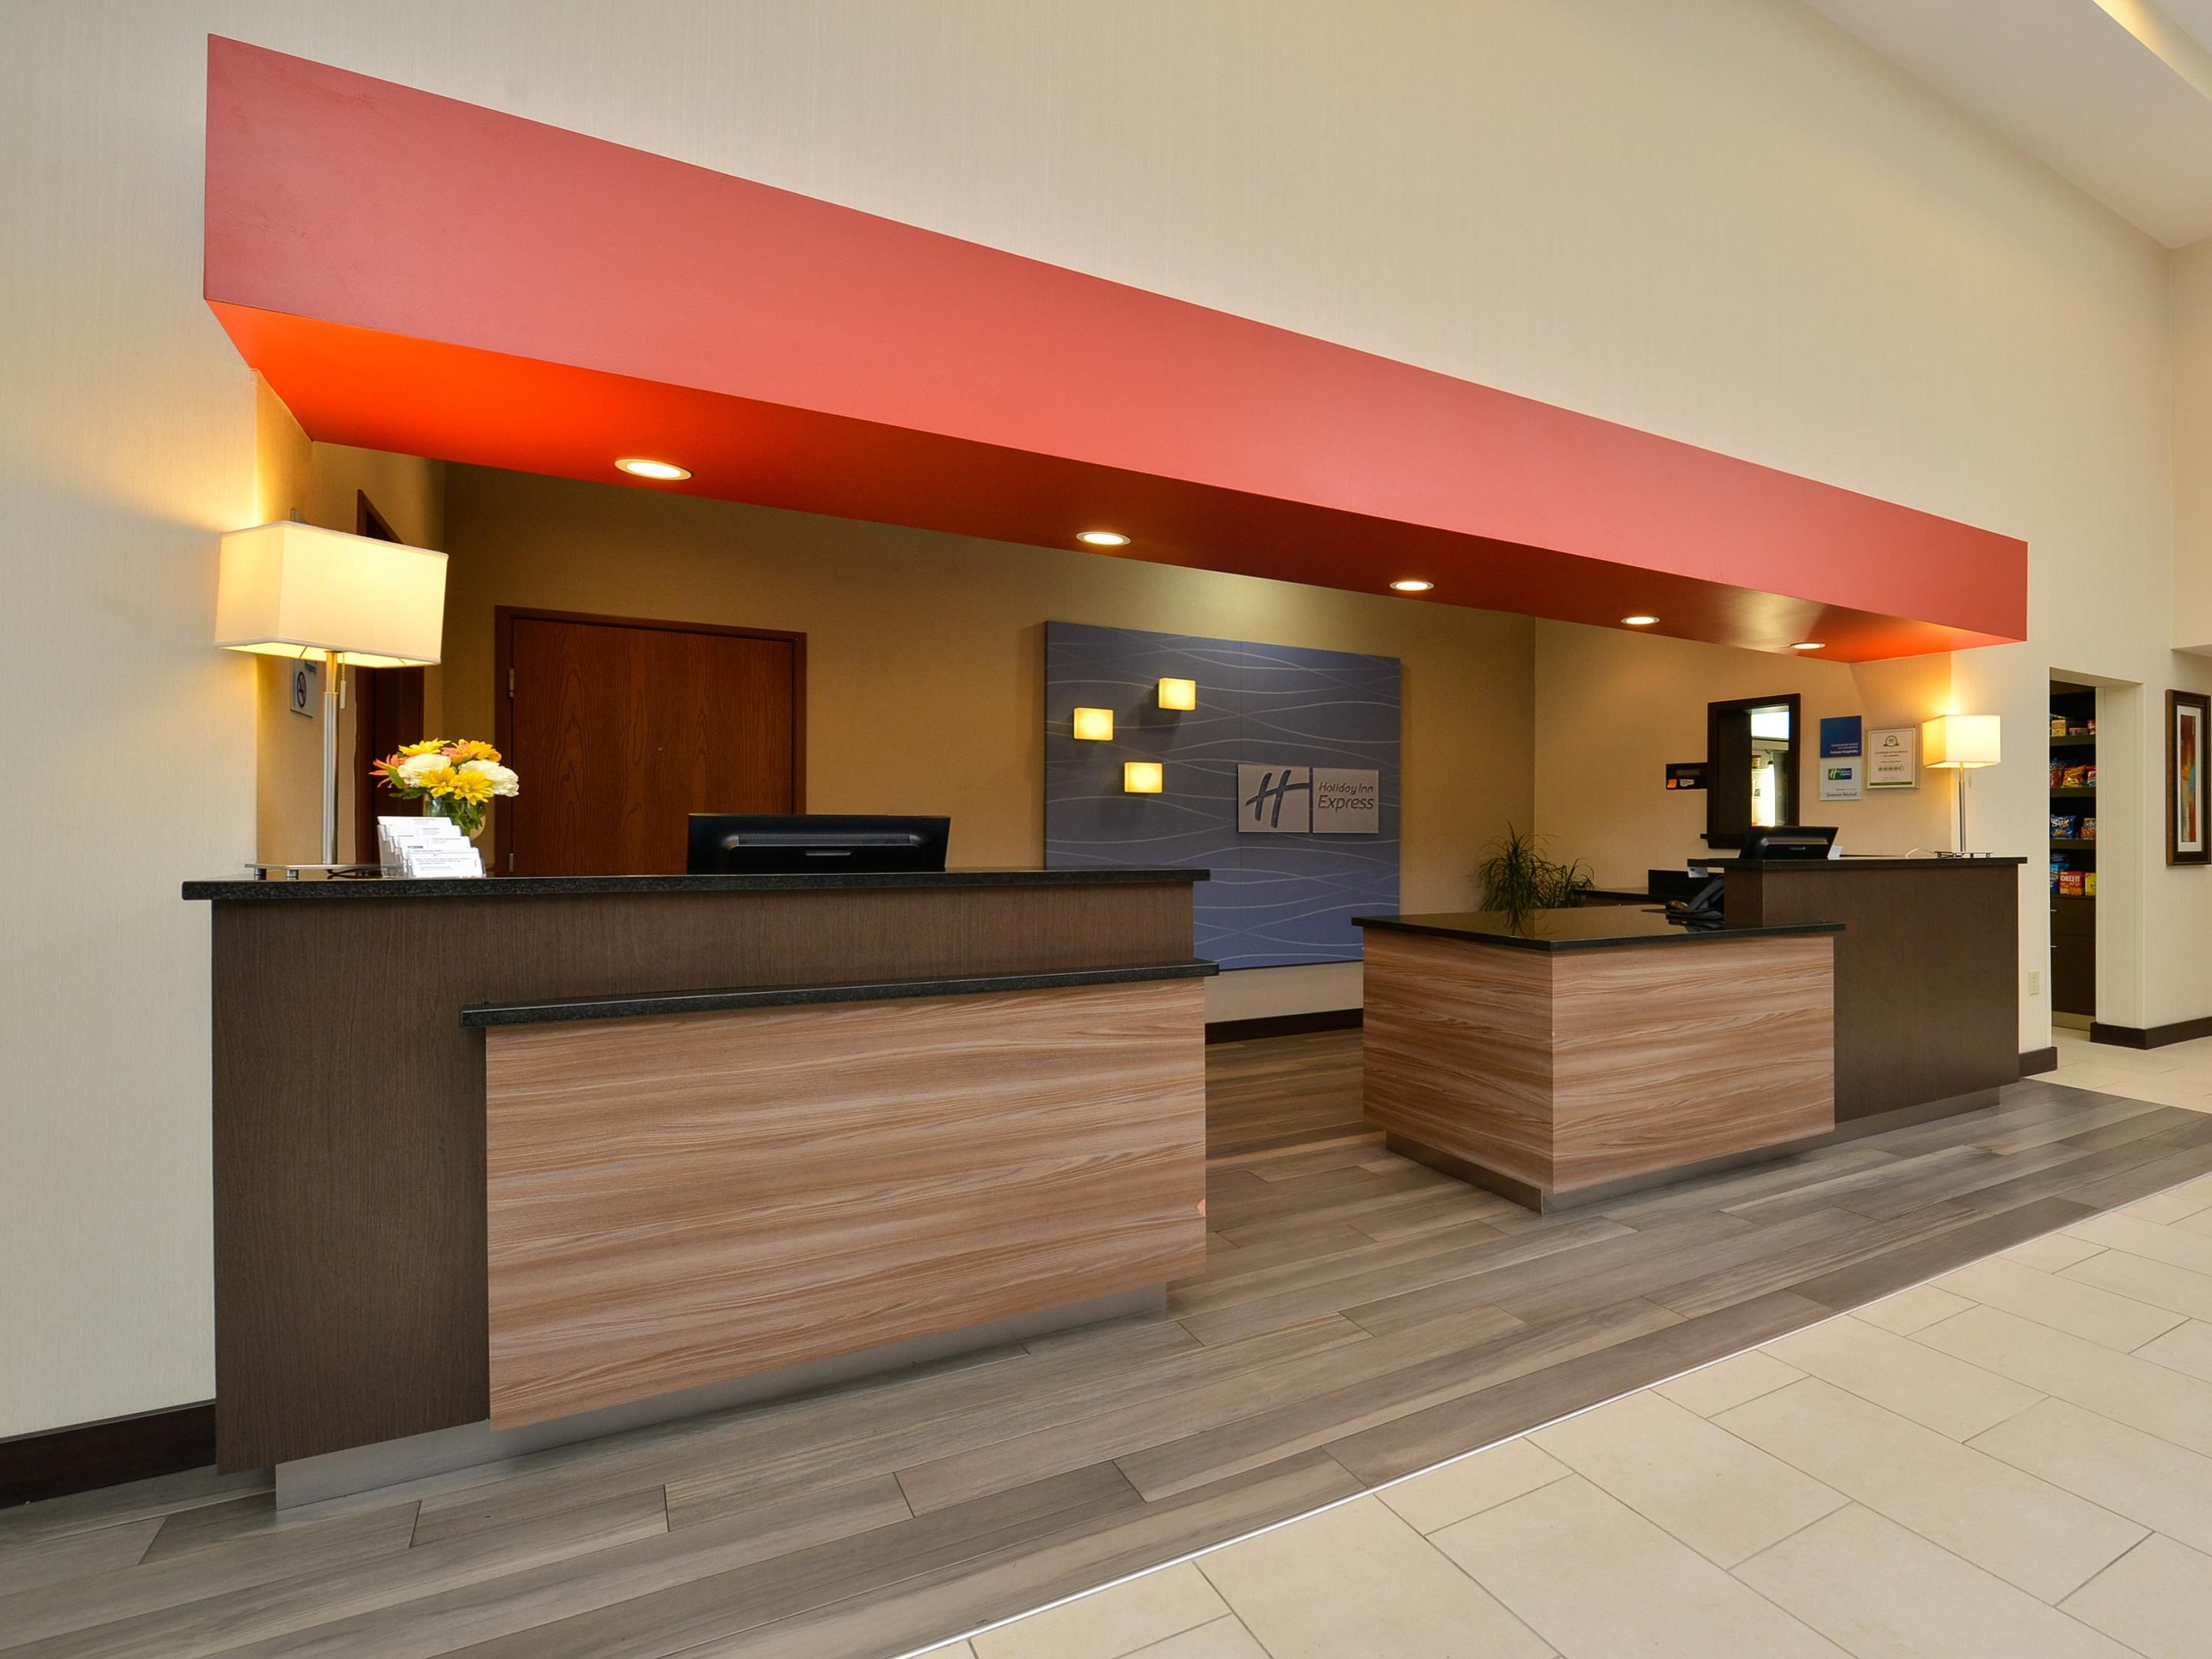 Welcome to the Holiday Inn Express! We hope you enjoy your stay!